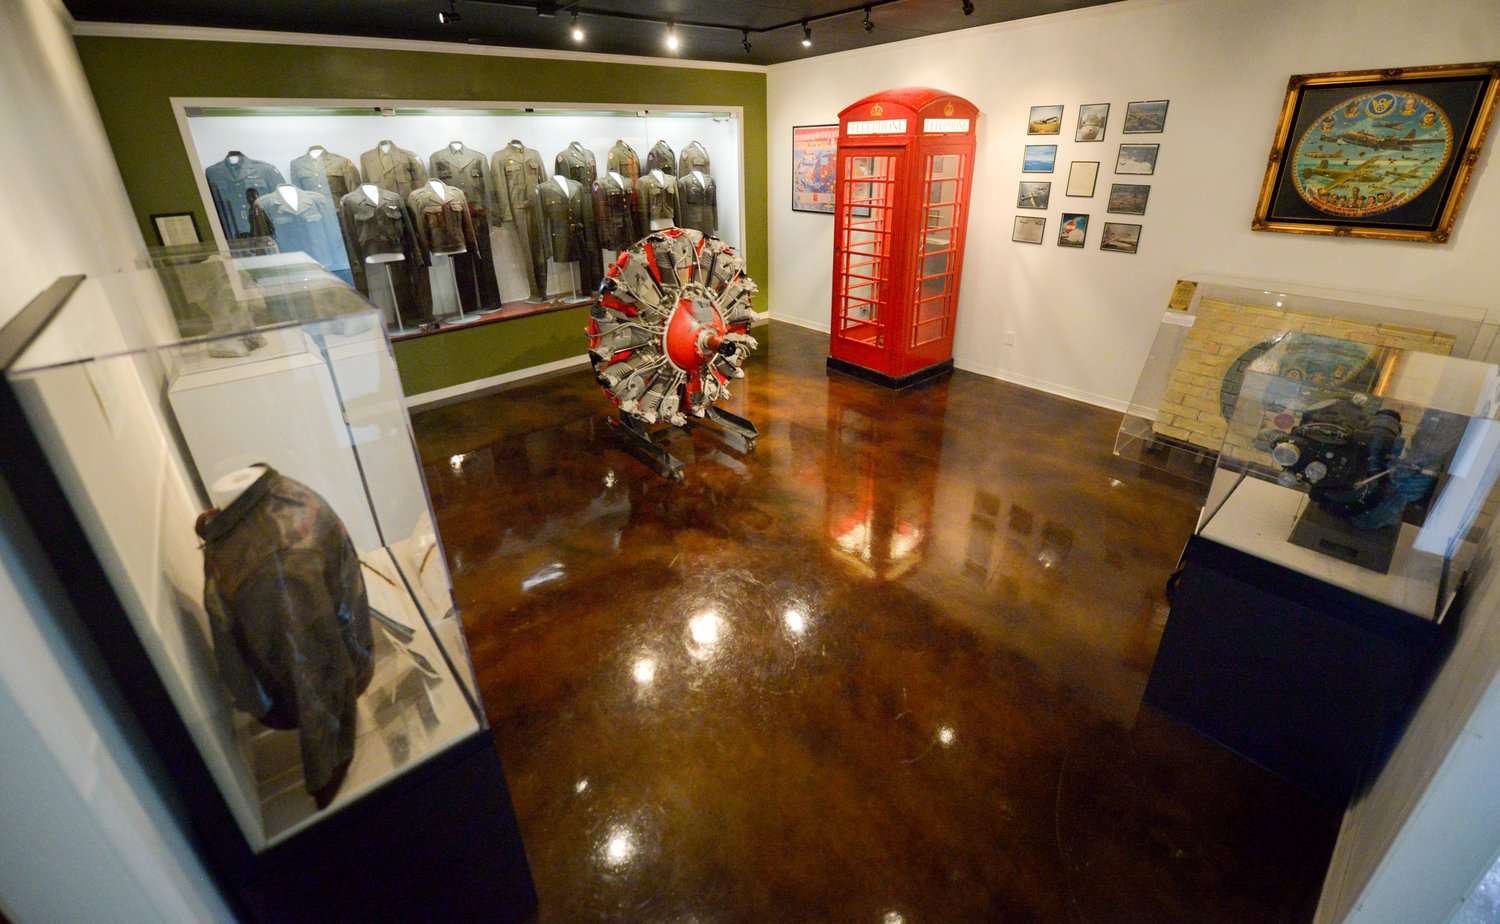 View of a gallery exhibit inside the museum